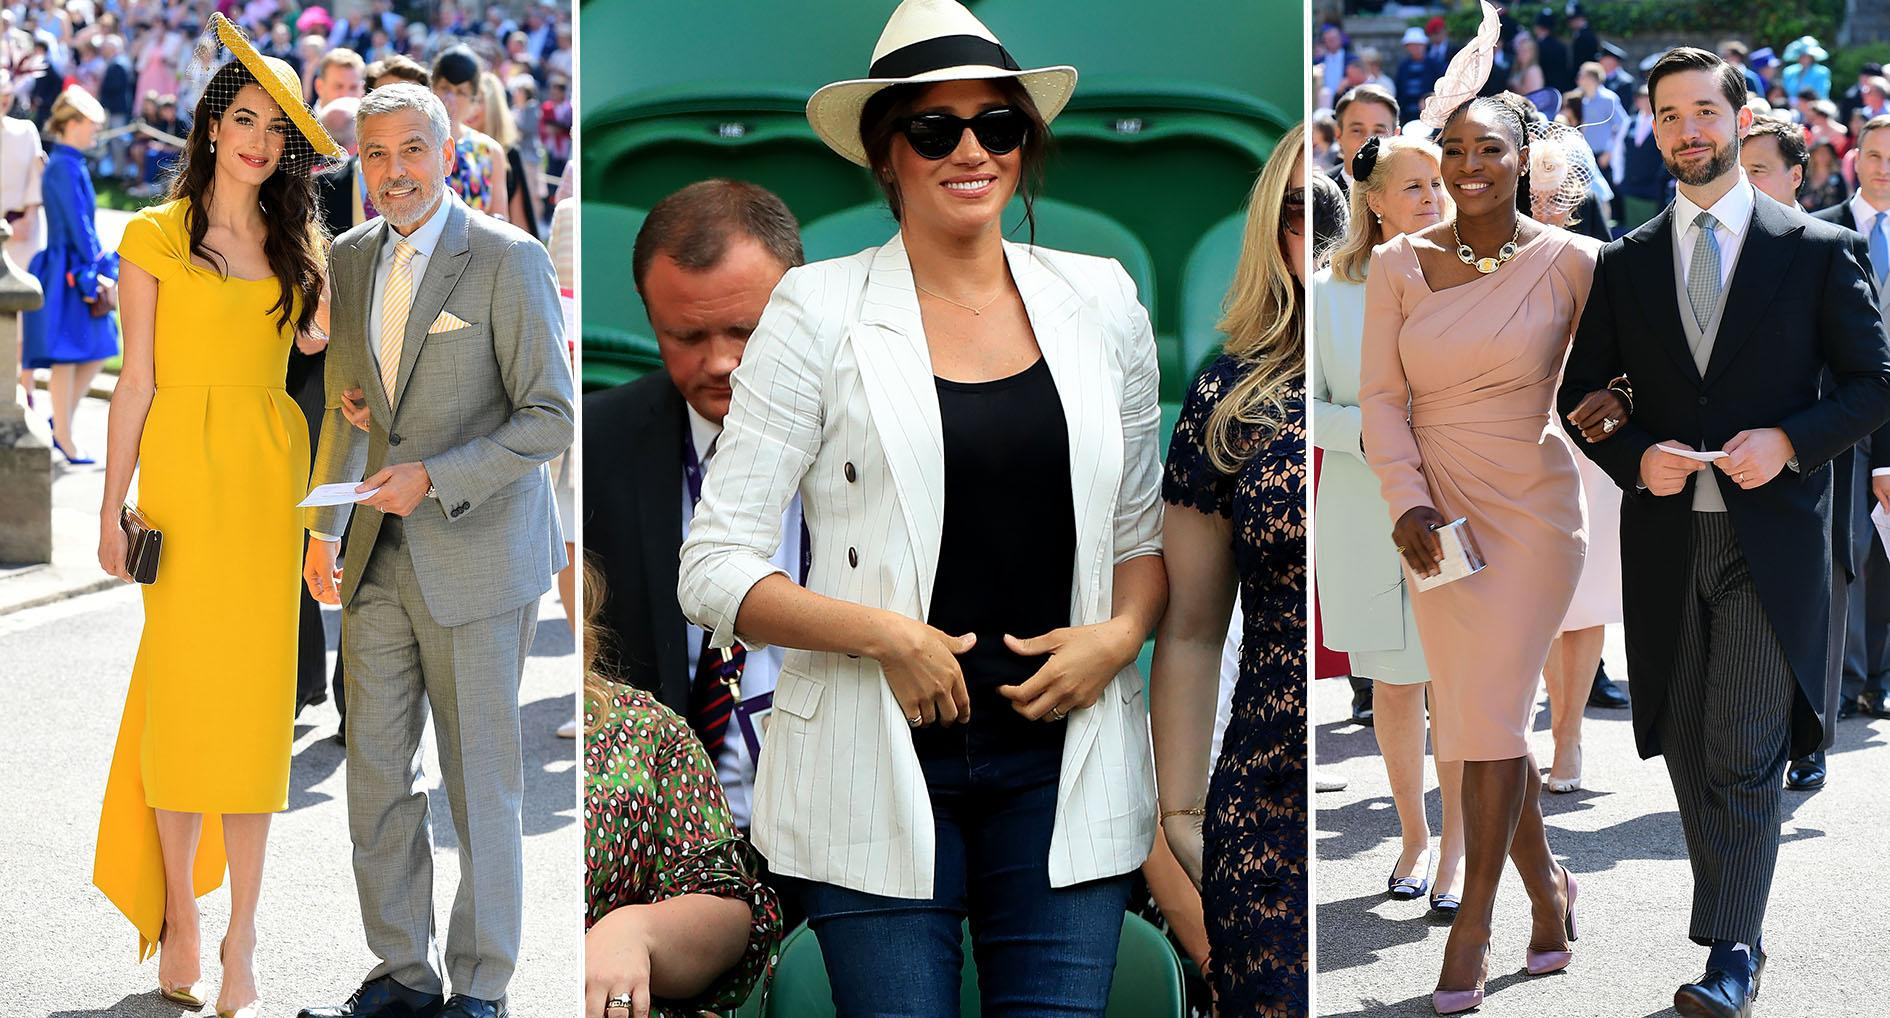 Meghan is friends with the Clooneys and Serena Williams. [Photos: Getty/PA]